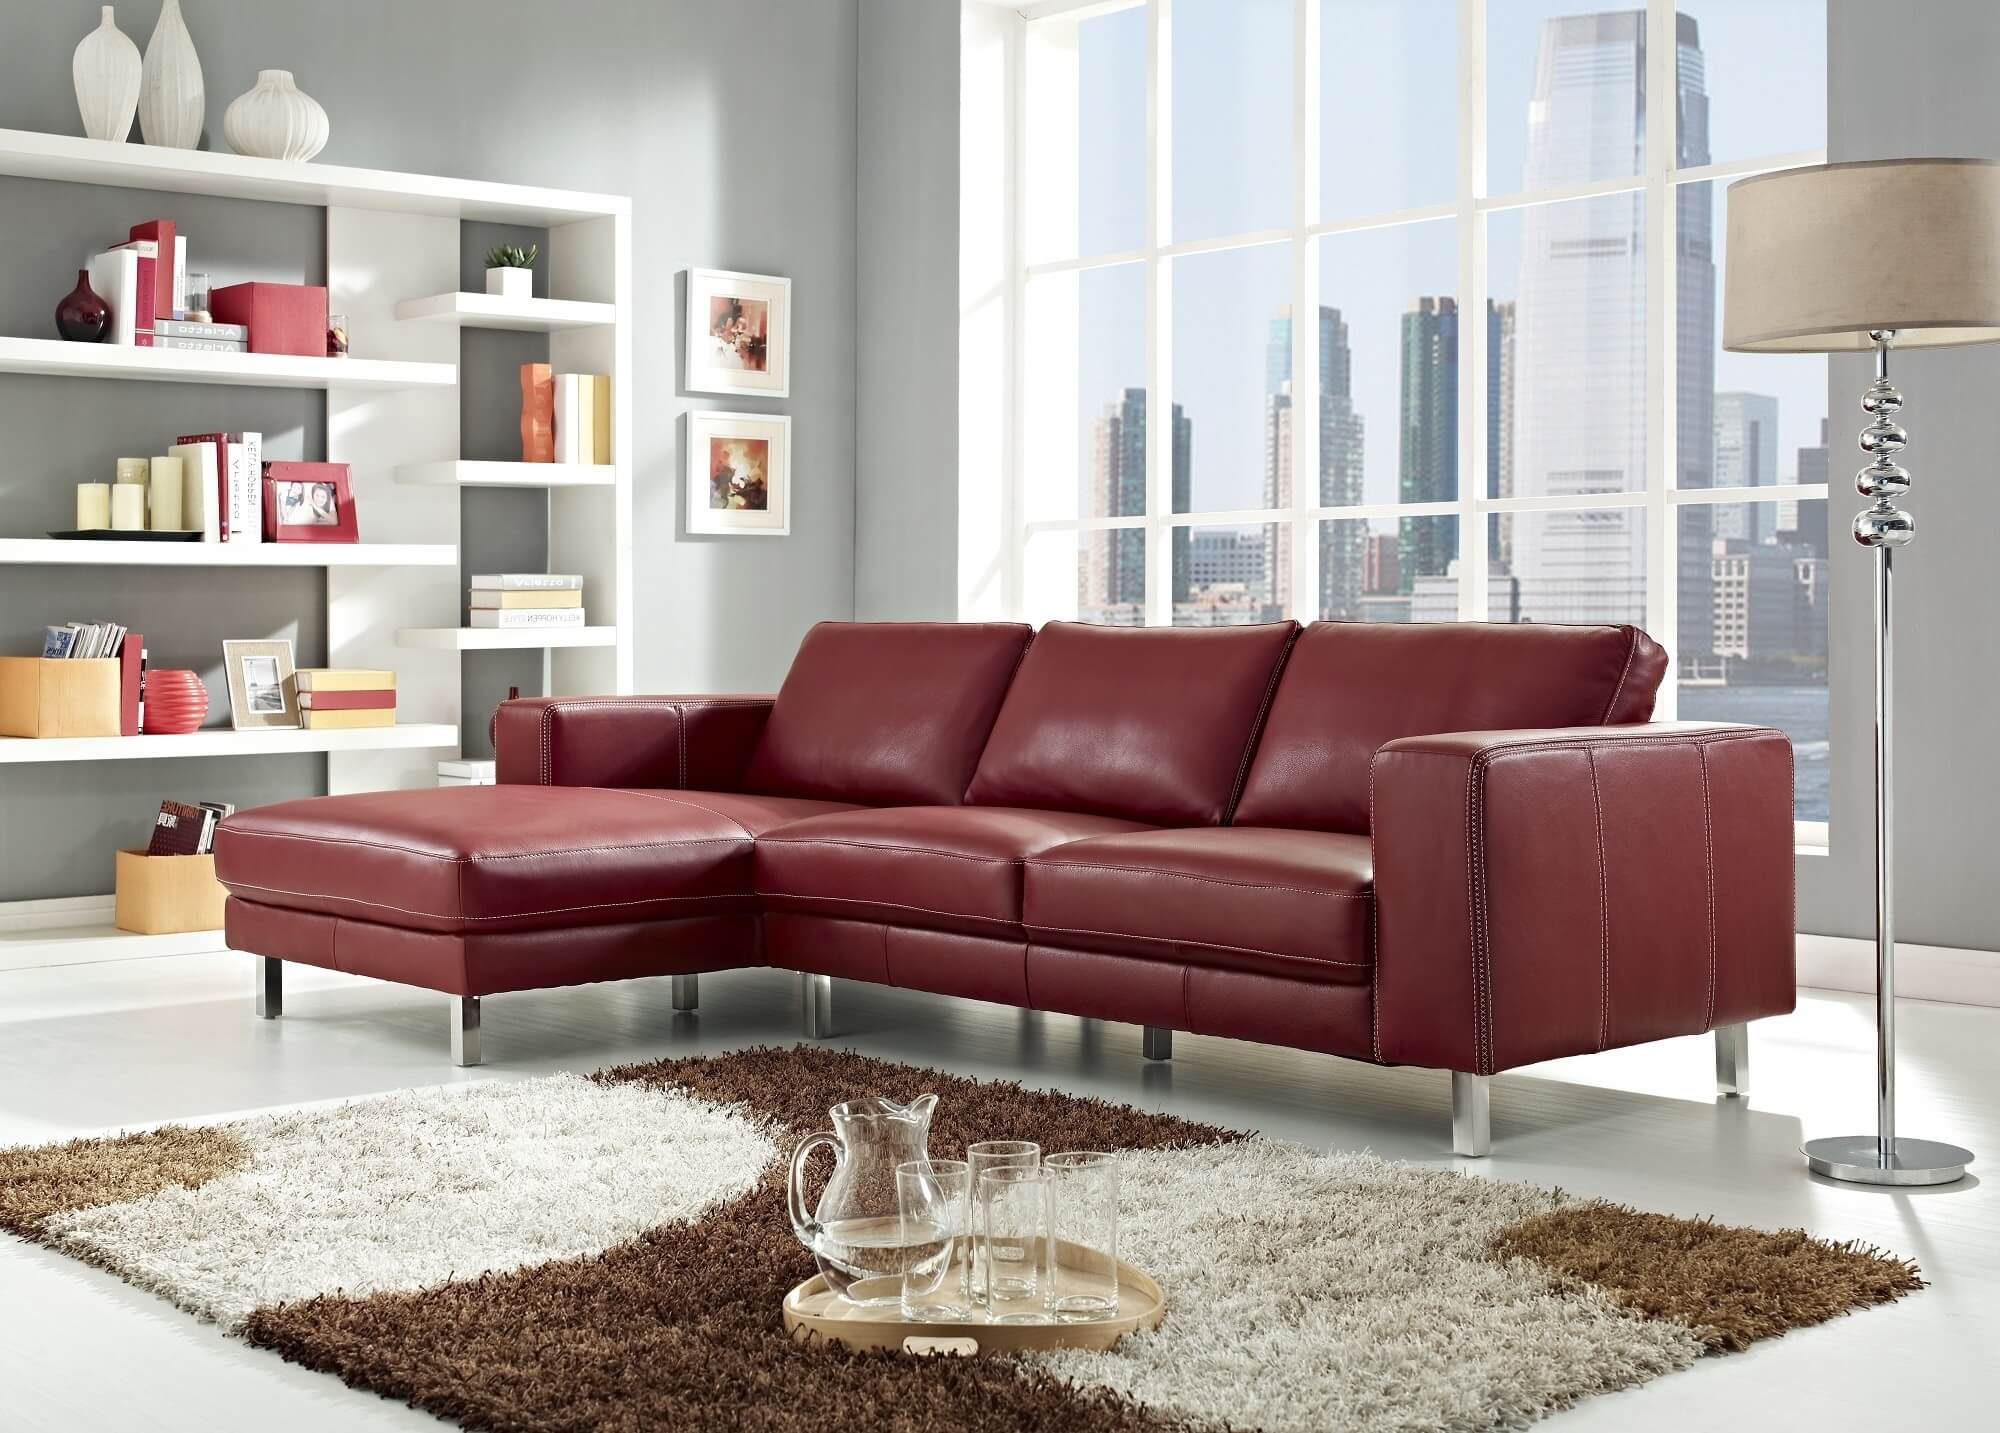 This Elegant Red Leather Sofa Is Made With A Solid Wood Frame, Chromed  Stainless Steel .